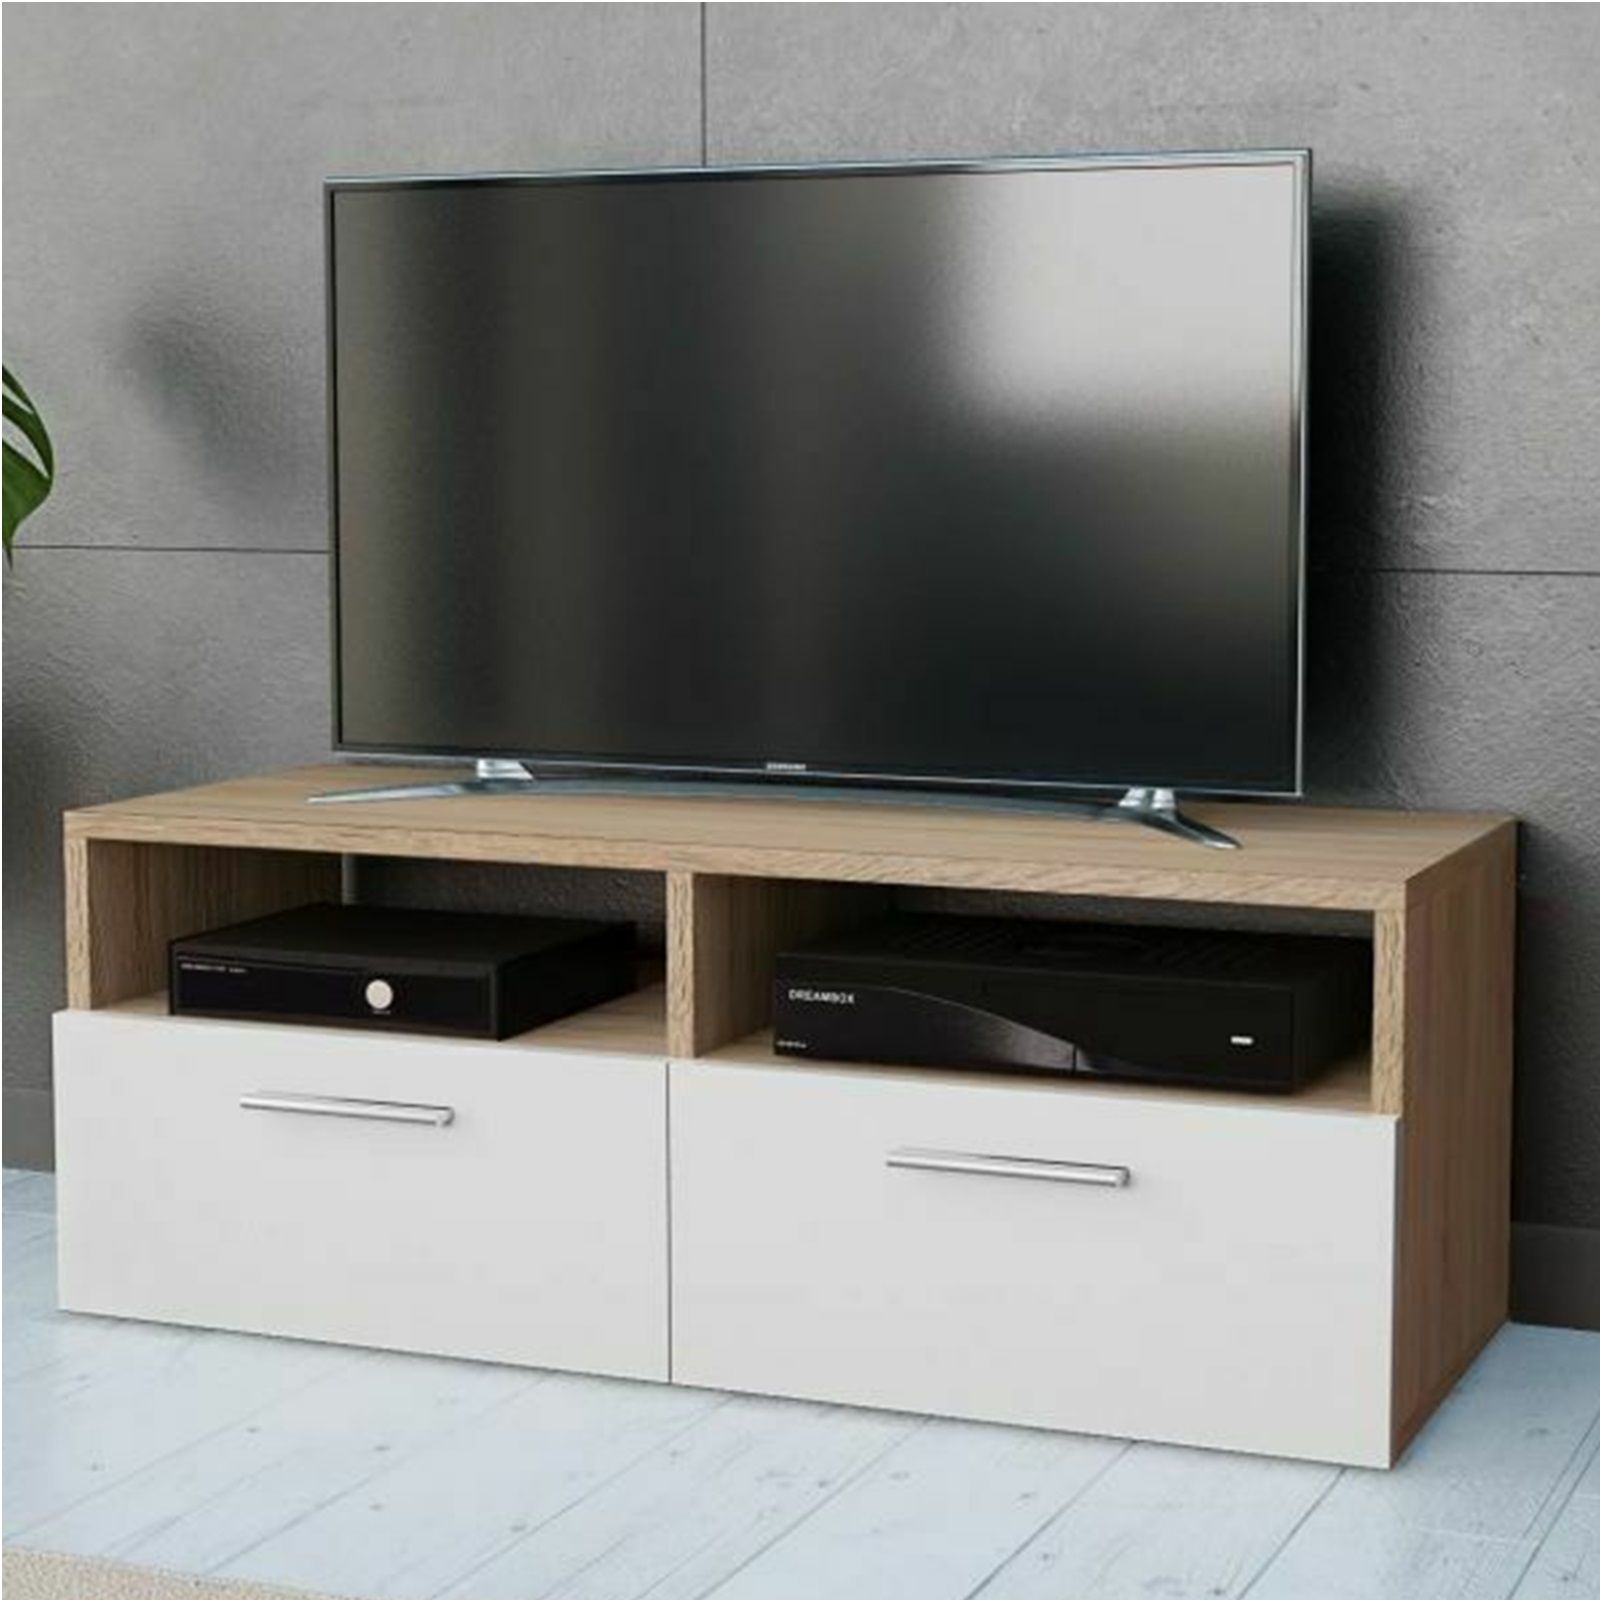 separation shoes 8b2d1 173ac Gr8 Home Wooden Modern White Oak TV Cabinet Stand Unit Lowboard Table  Furniture With Cupboard ATV-STAND-01-WHITE & OAK